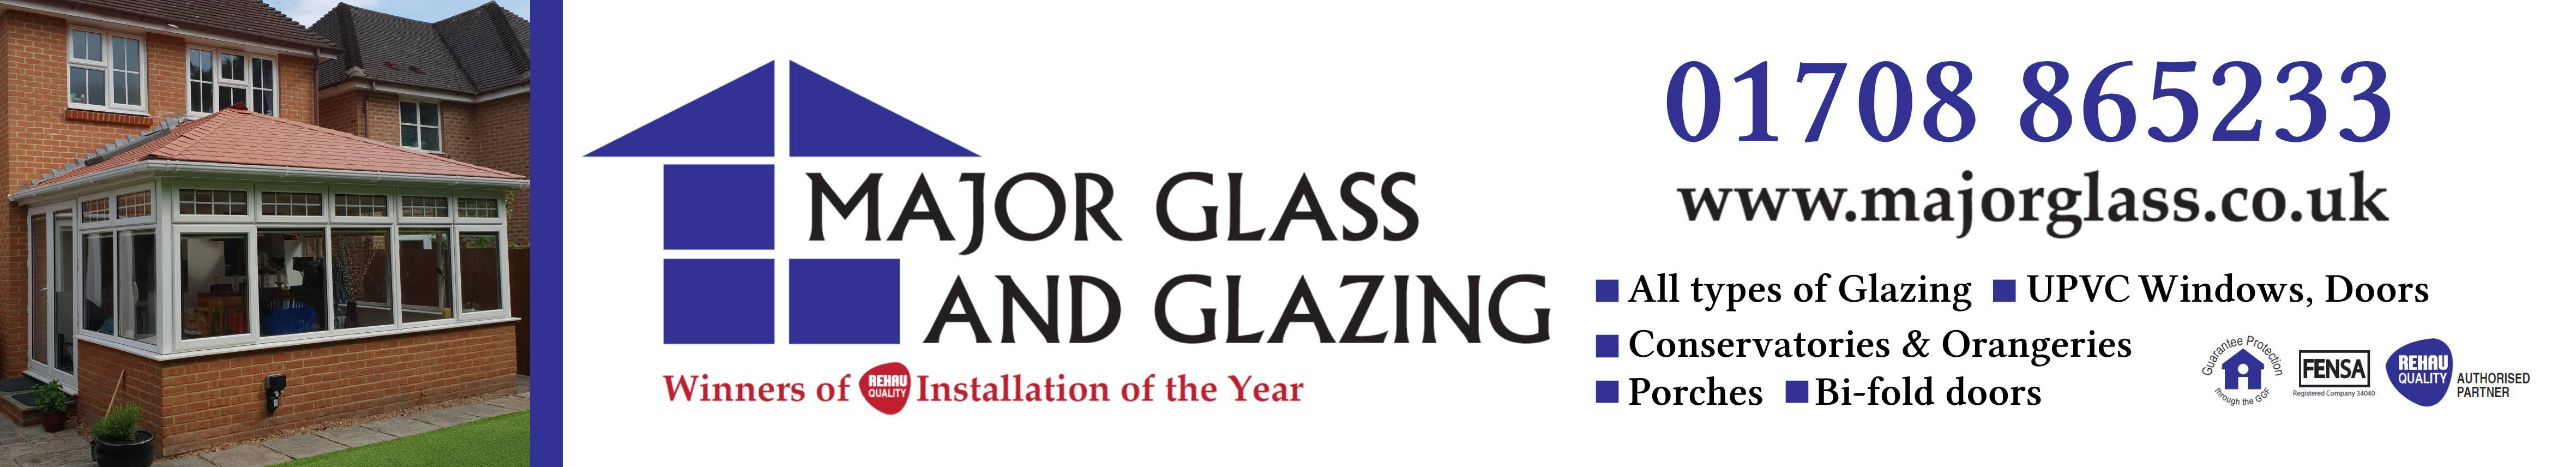 Major Glass and Glazing